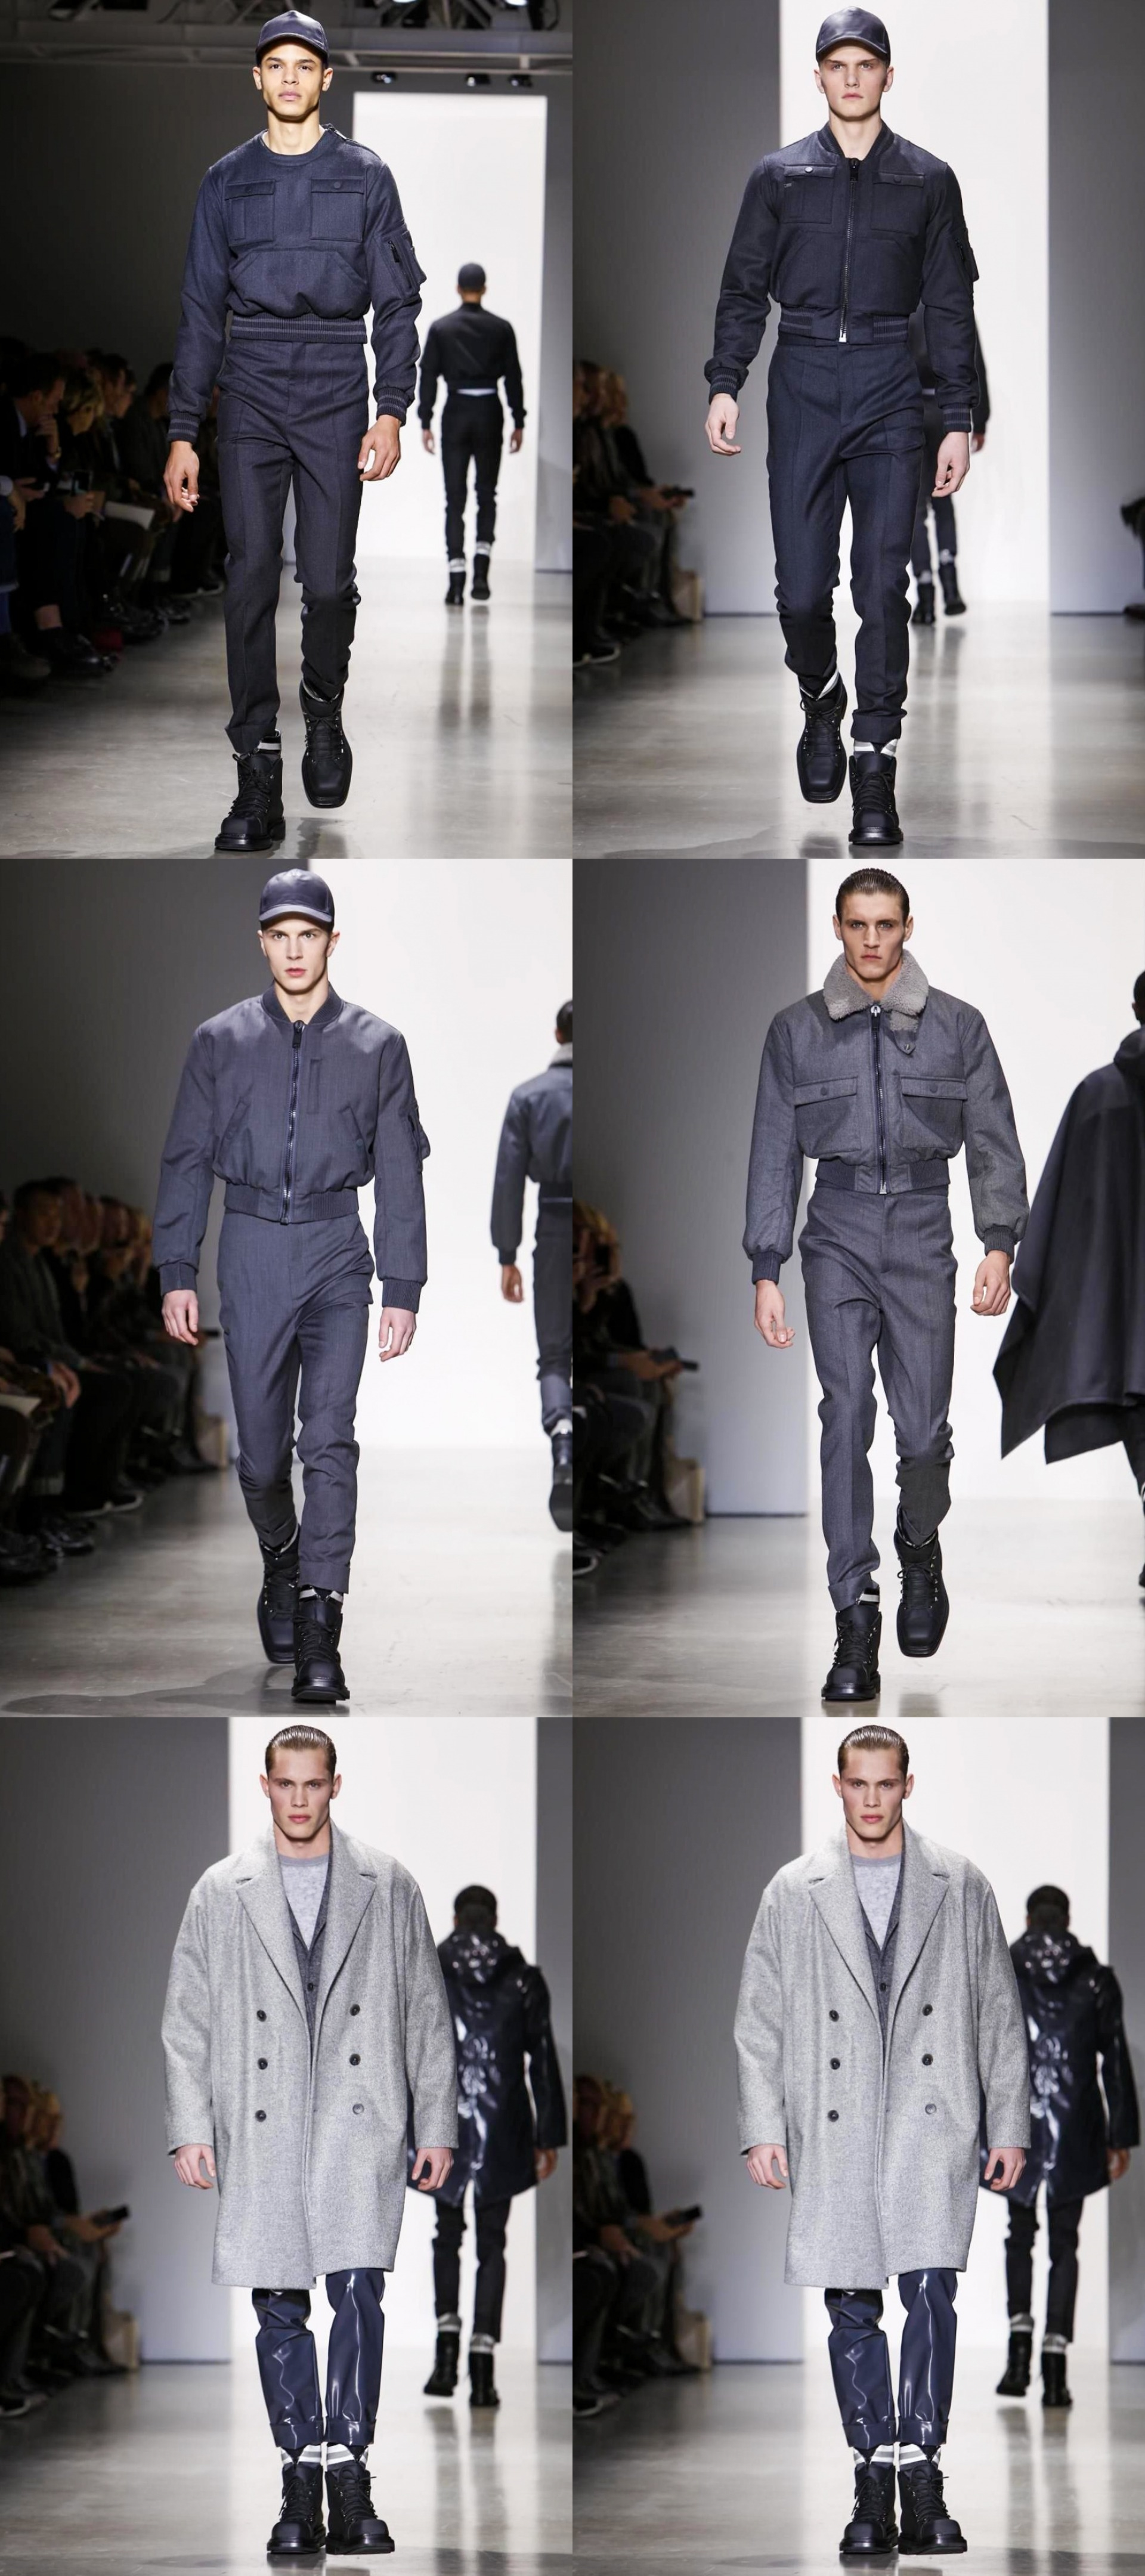 CALVIN KLEIN, fw15, fall winter 2015, milan fashion week, desfile 2015, moda masculina, tendencia masculina, menswear, fashion blogger, blogger, style, blogger, fashion blogger, moda sem censura, alex cursino, 2